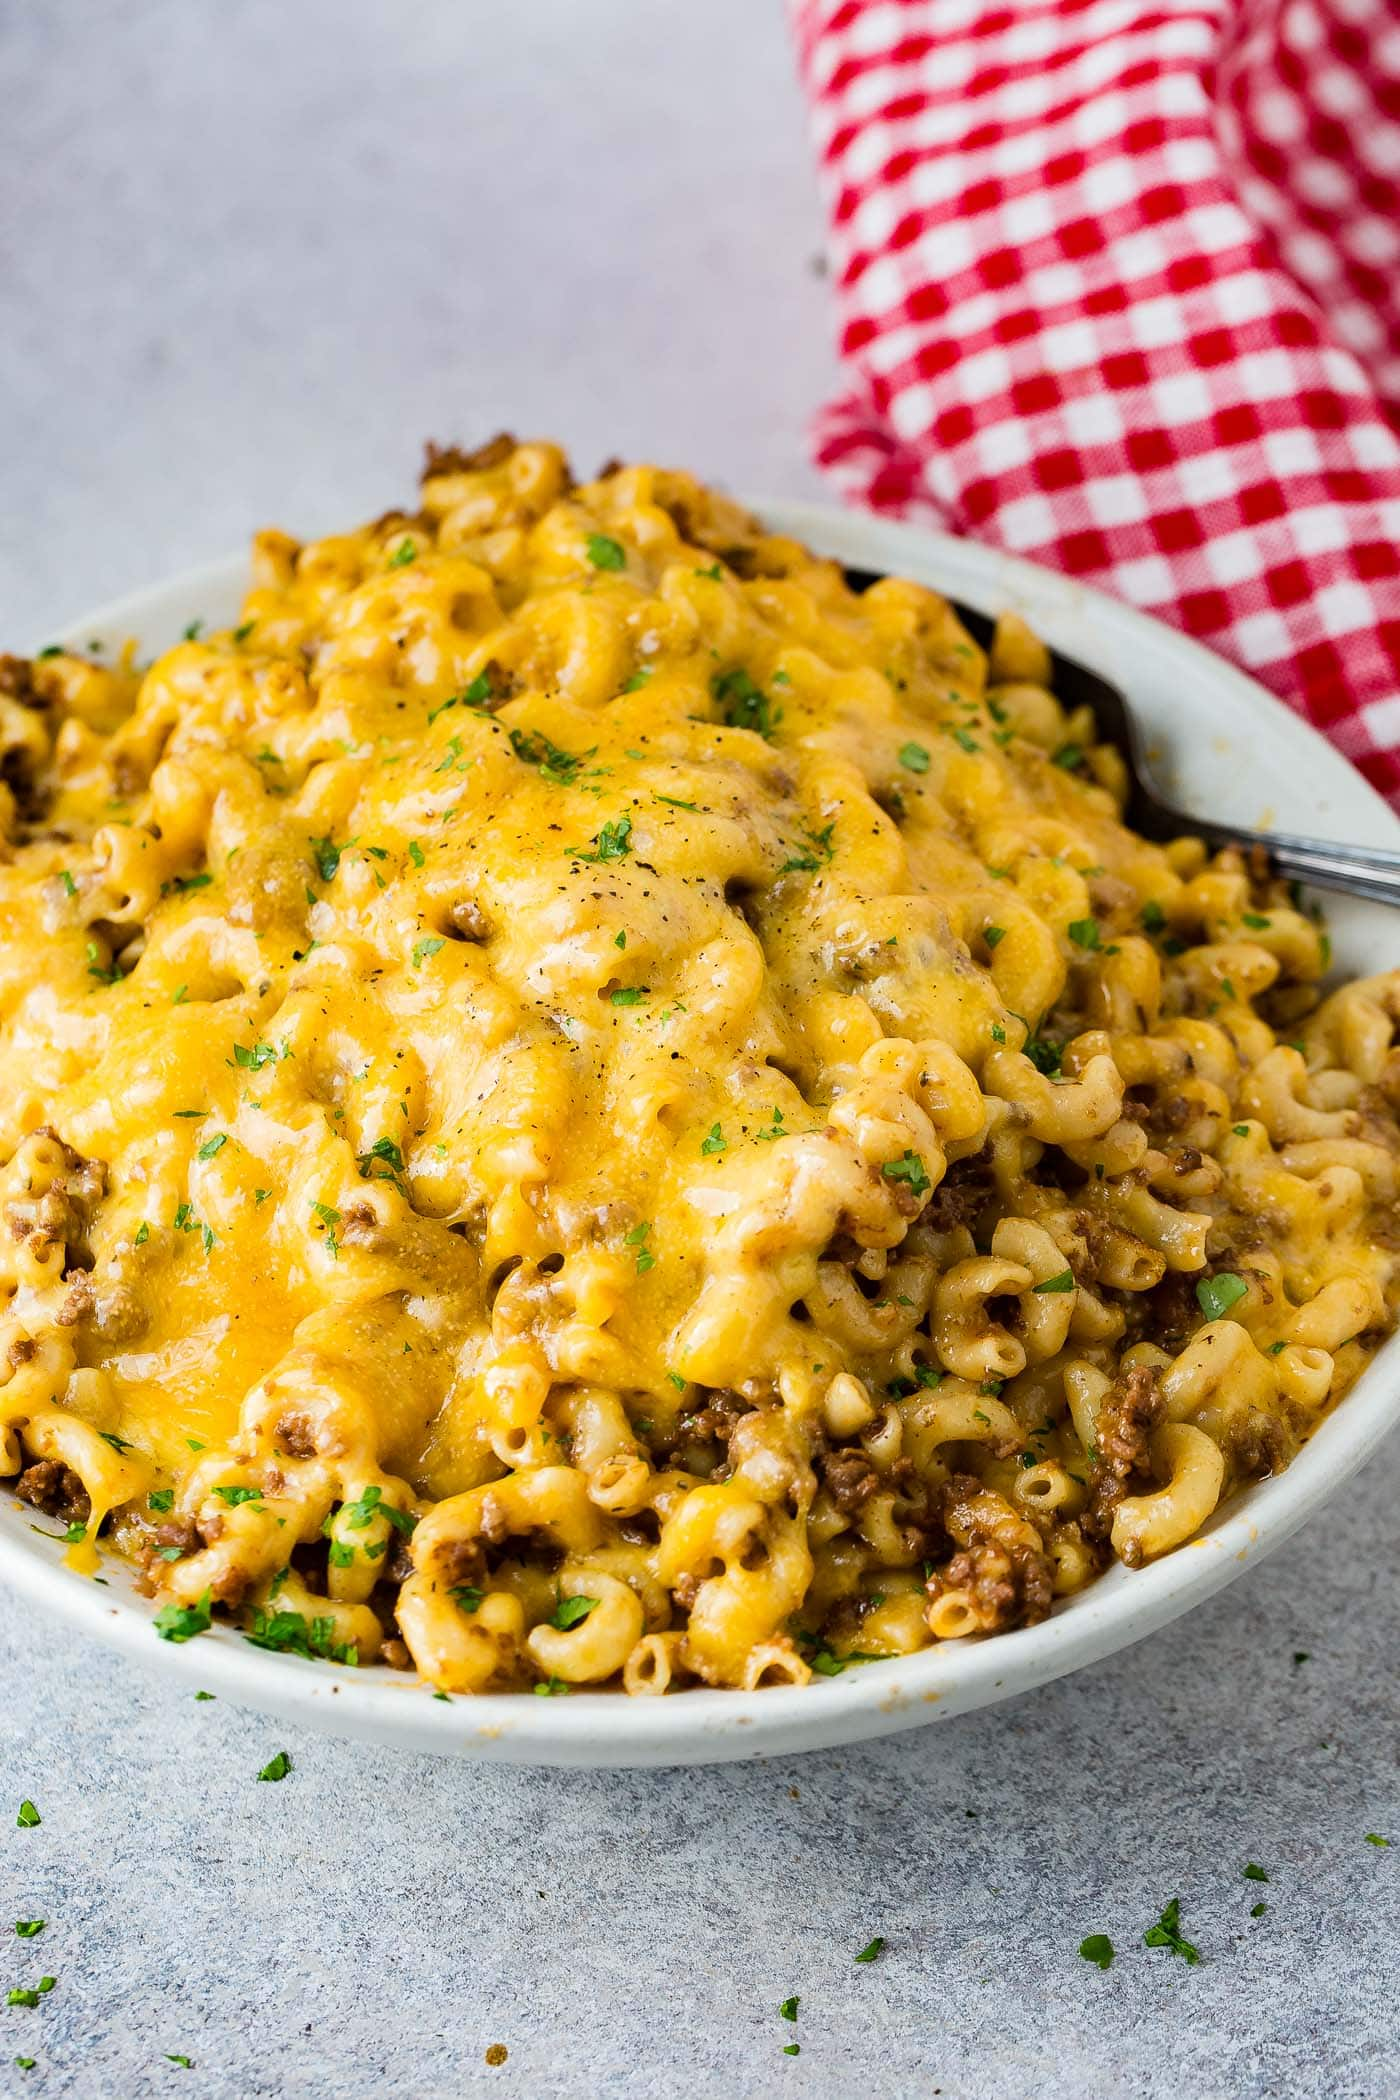 A photo of a white serving bowl full of cheesy Hamburger Helper ready to serve.